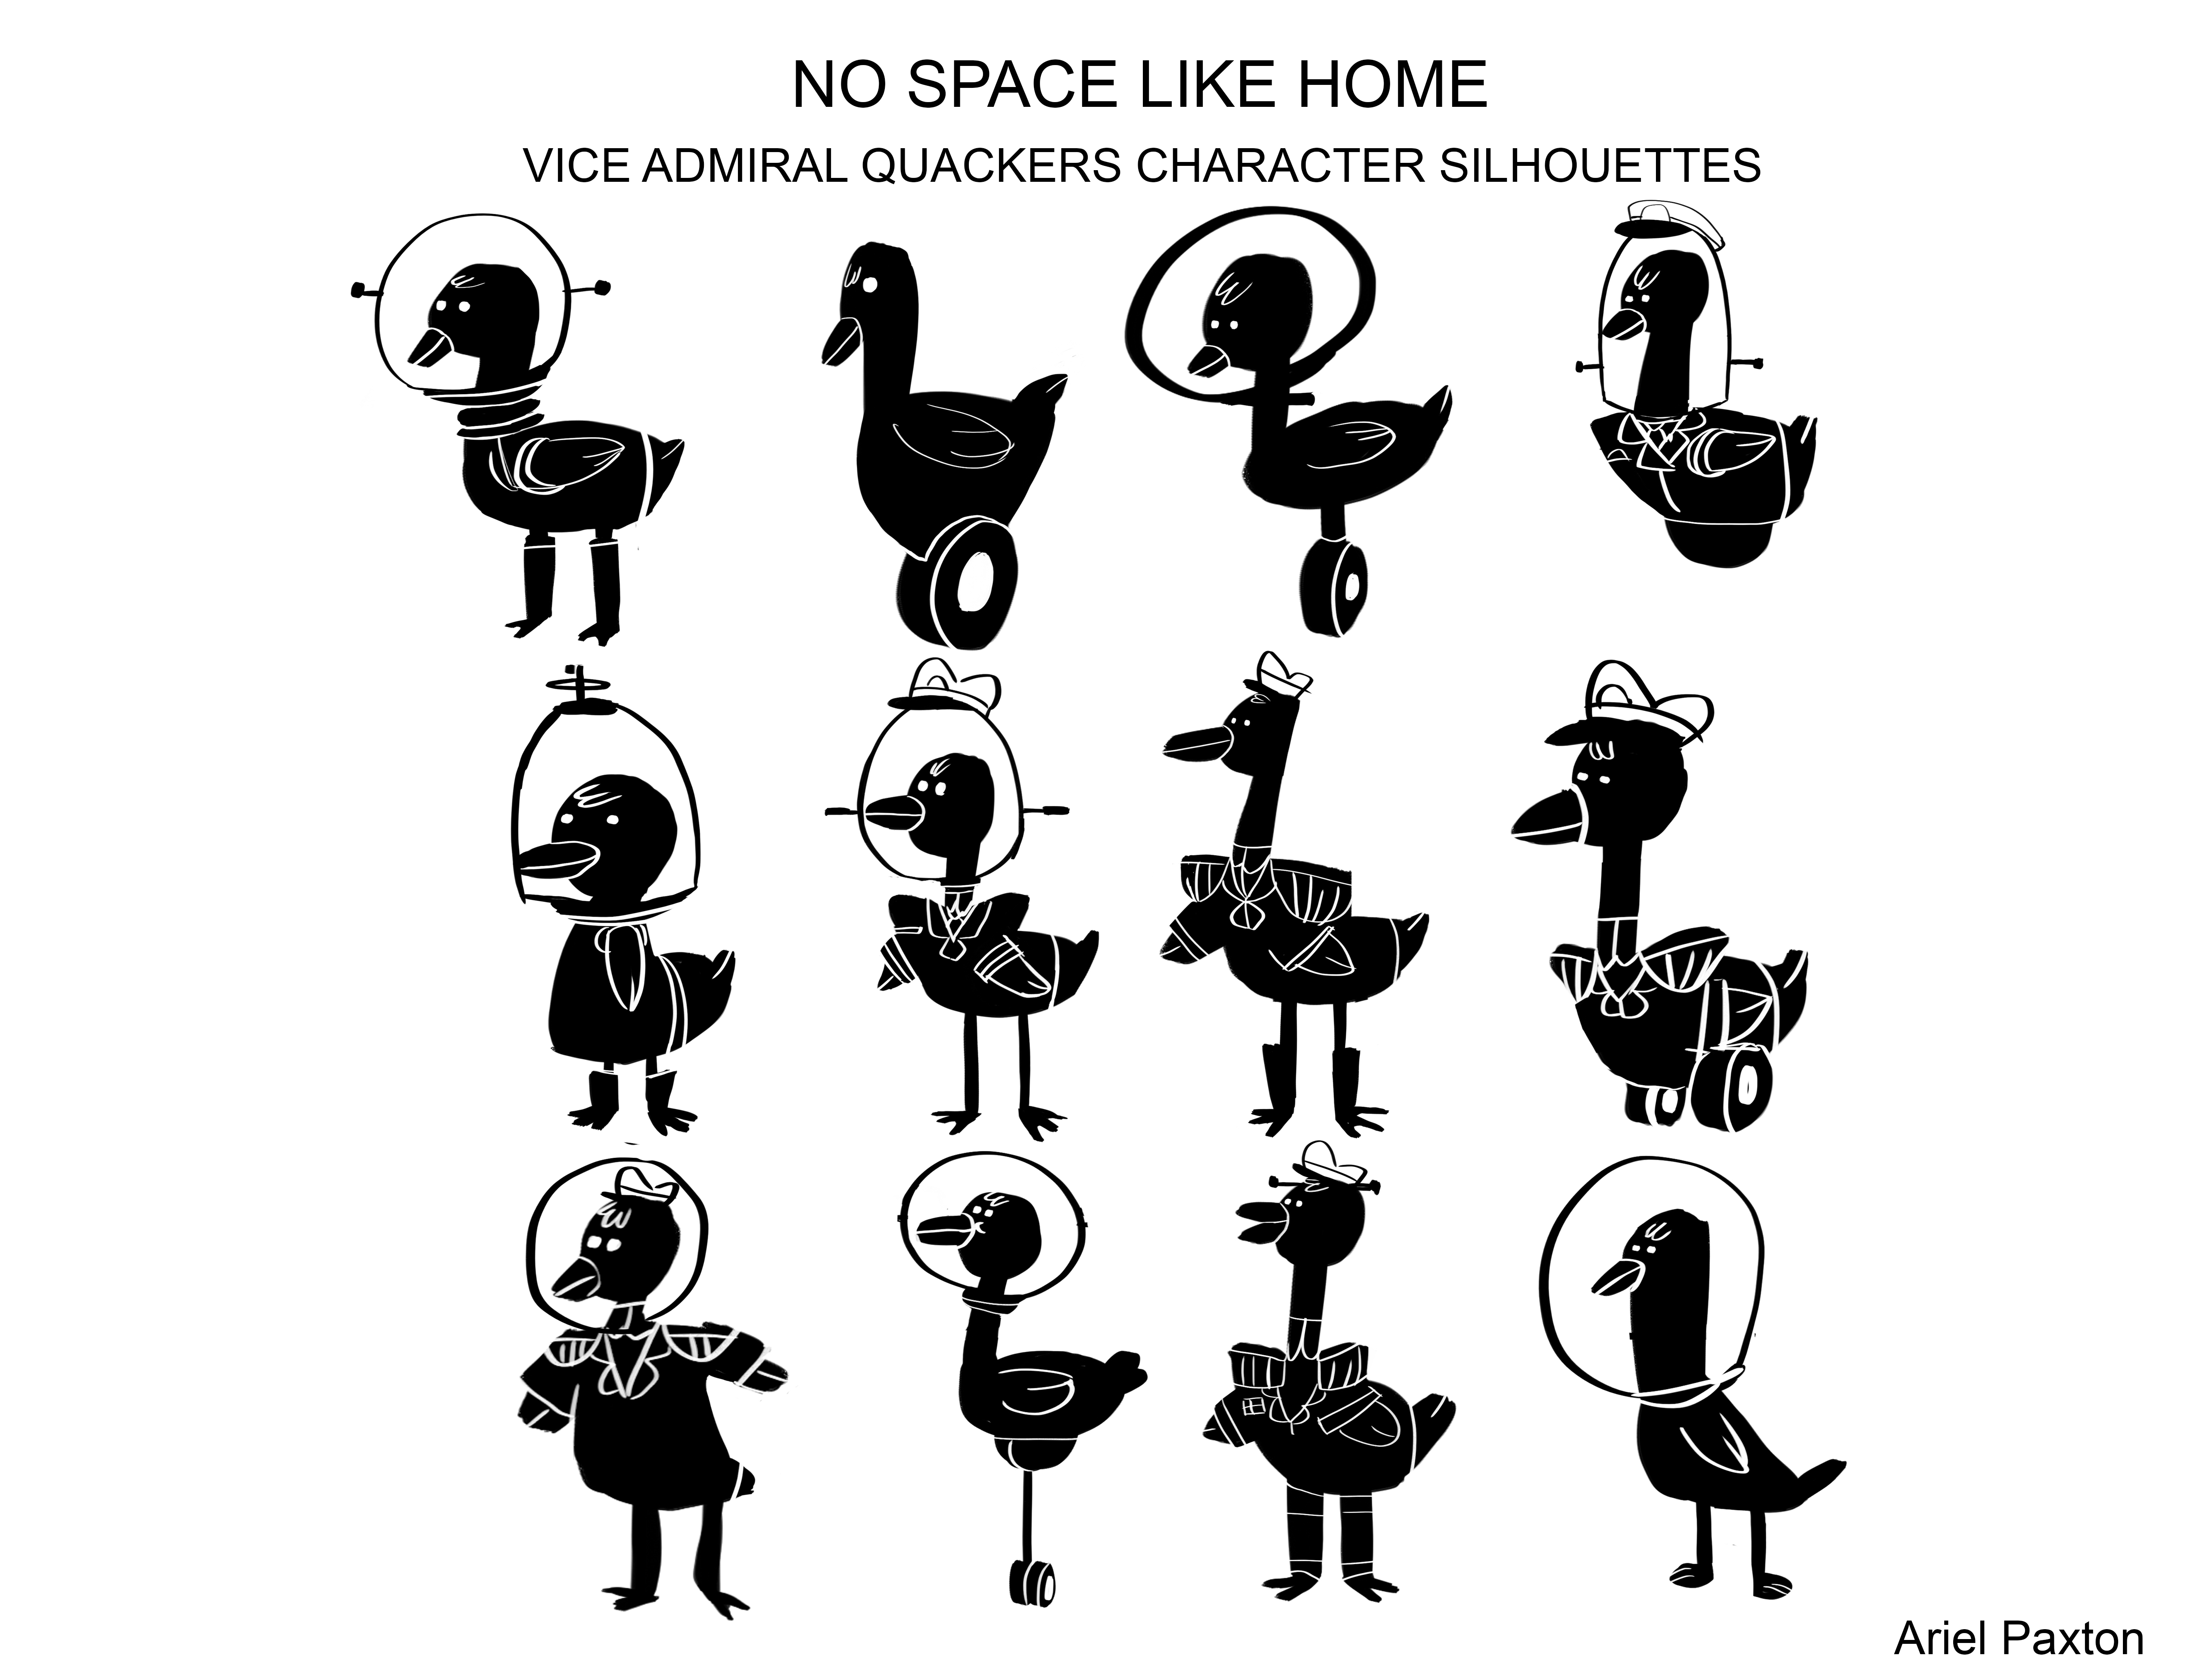 No Space Like Home Duck Silhouettes